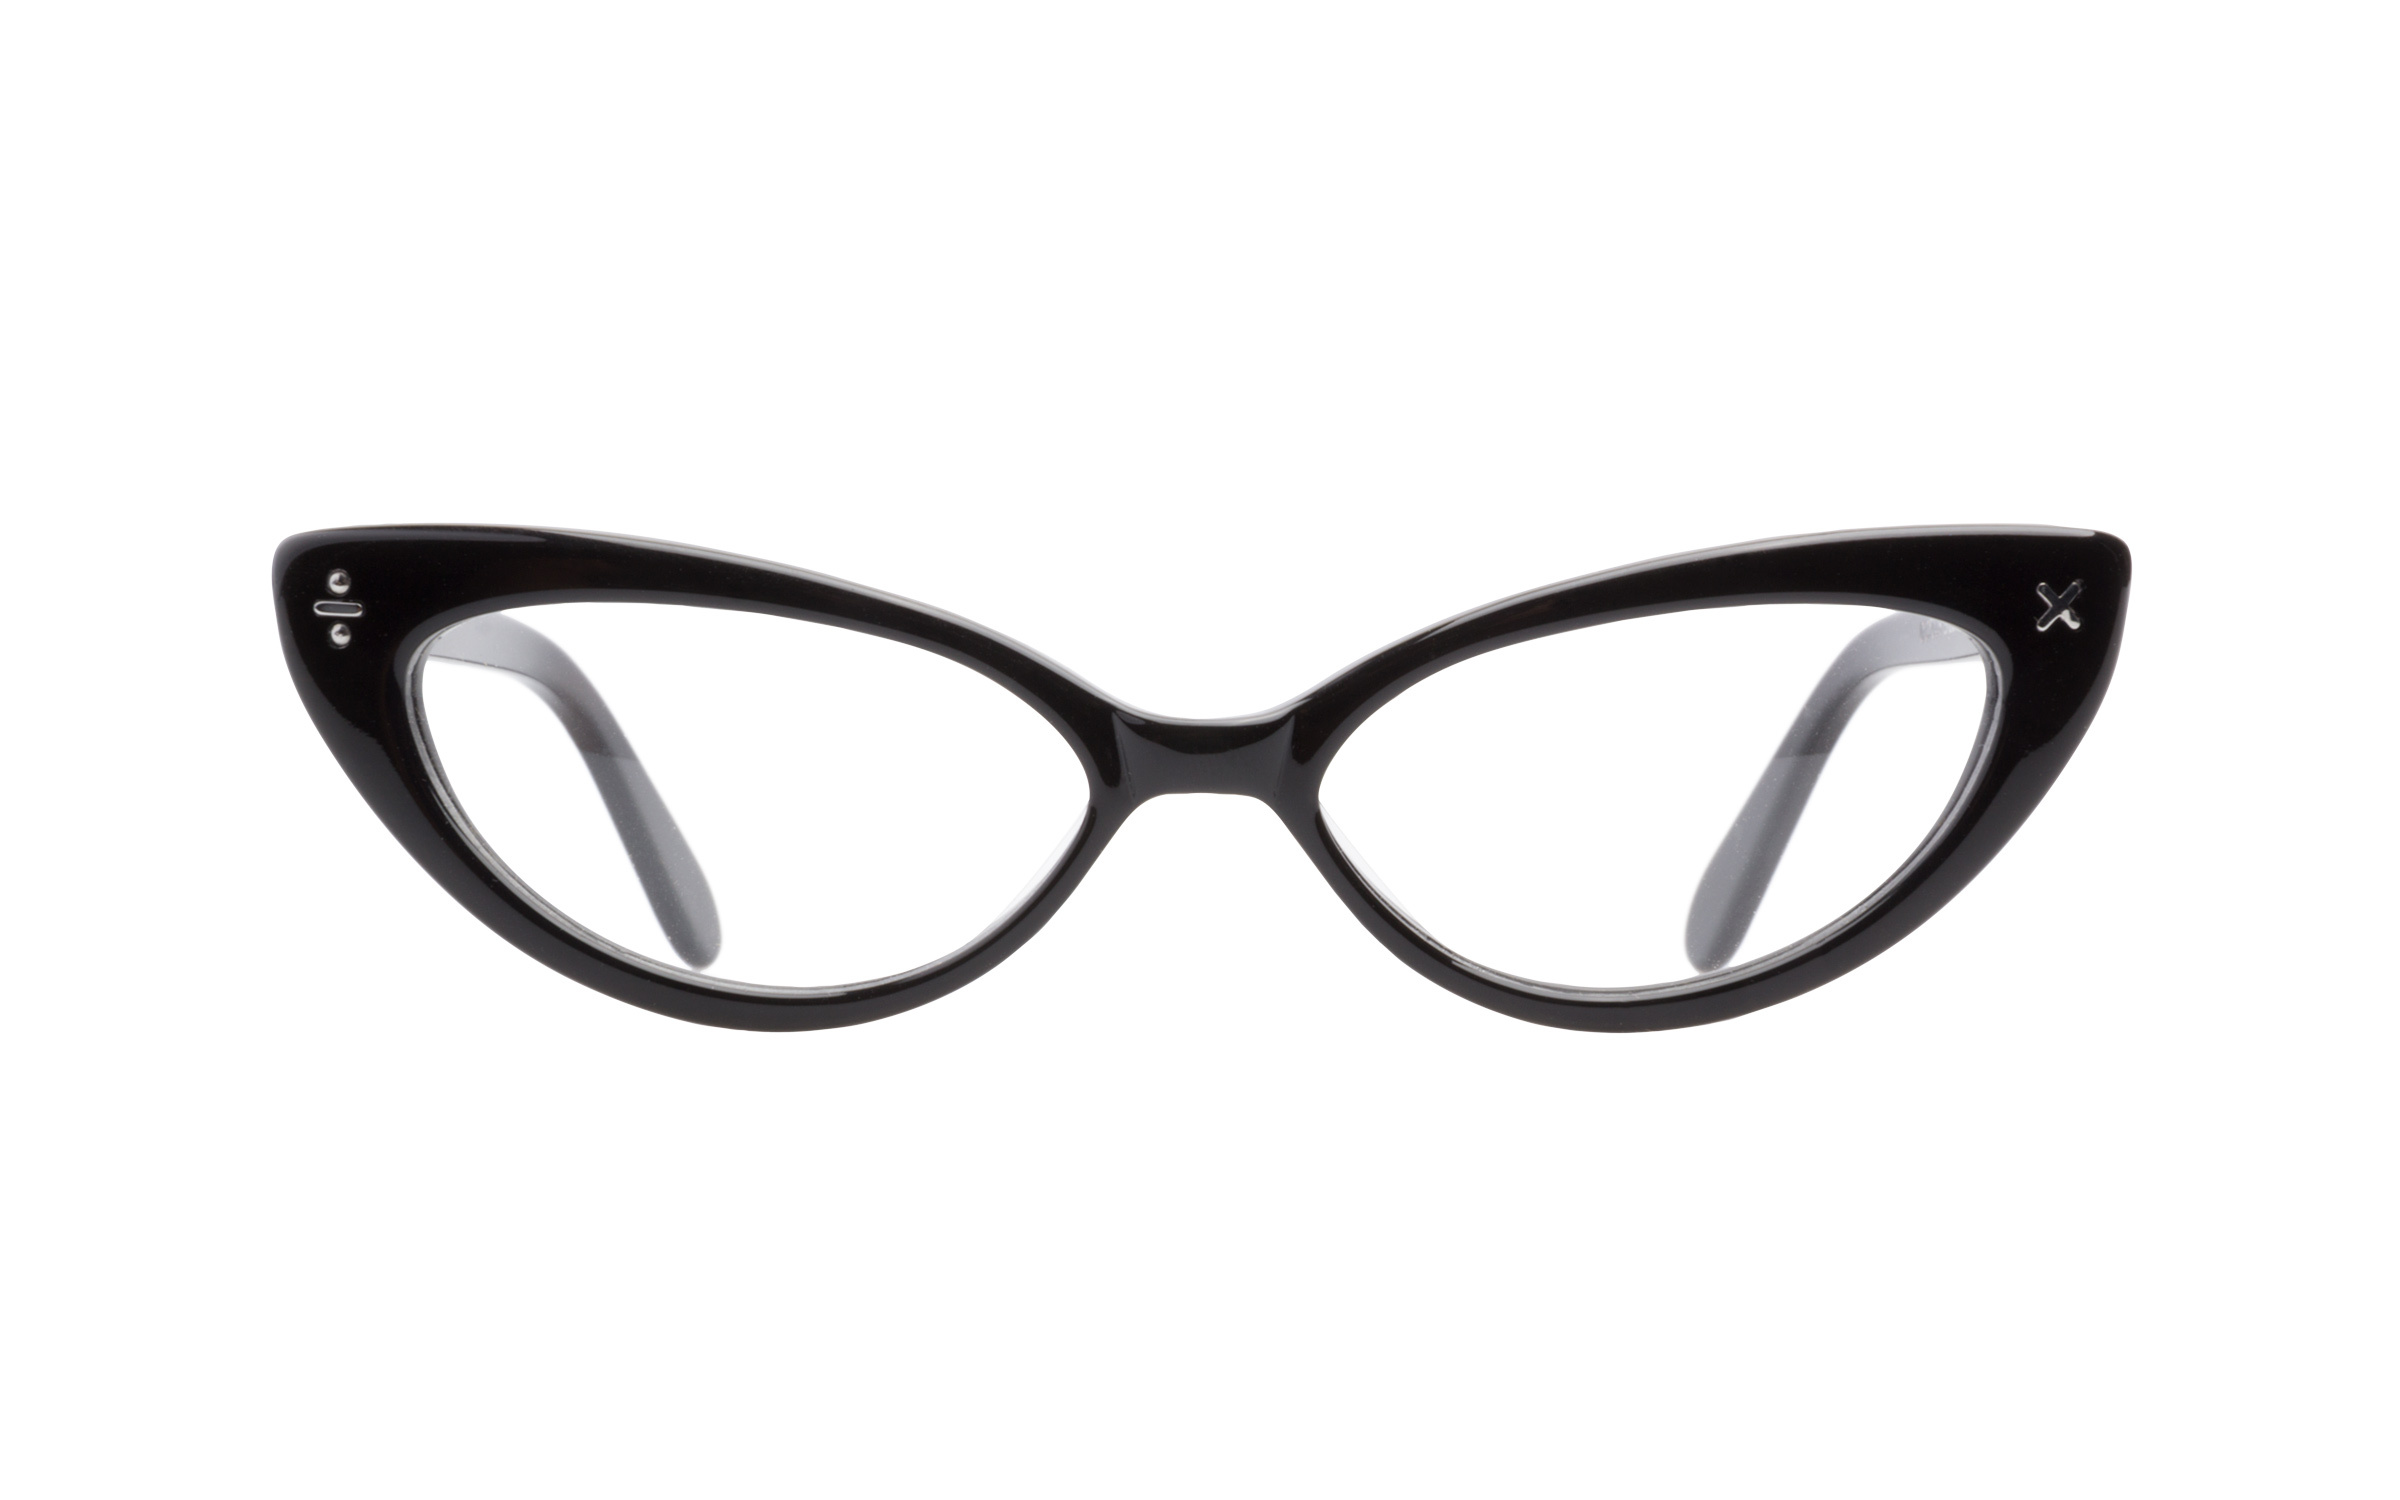 Women's Vintage Glasses Black Derek Cardigan Online Clearly